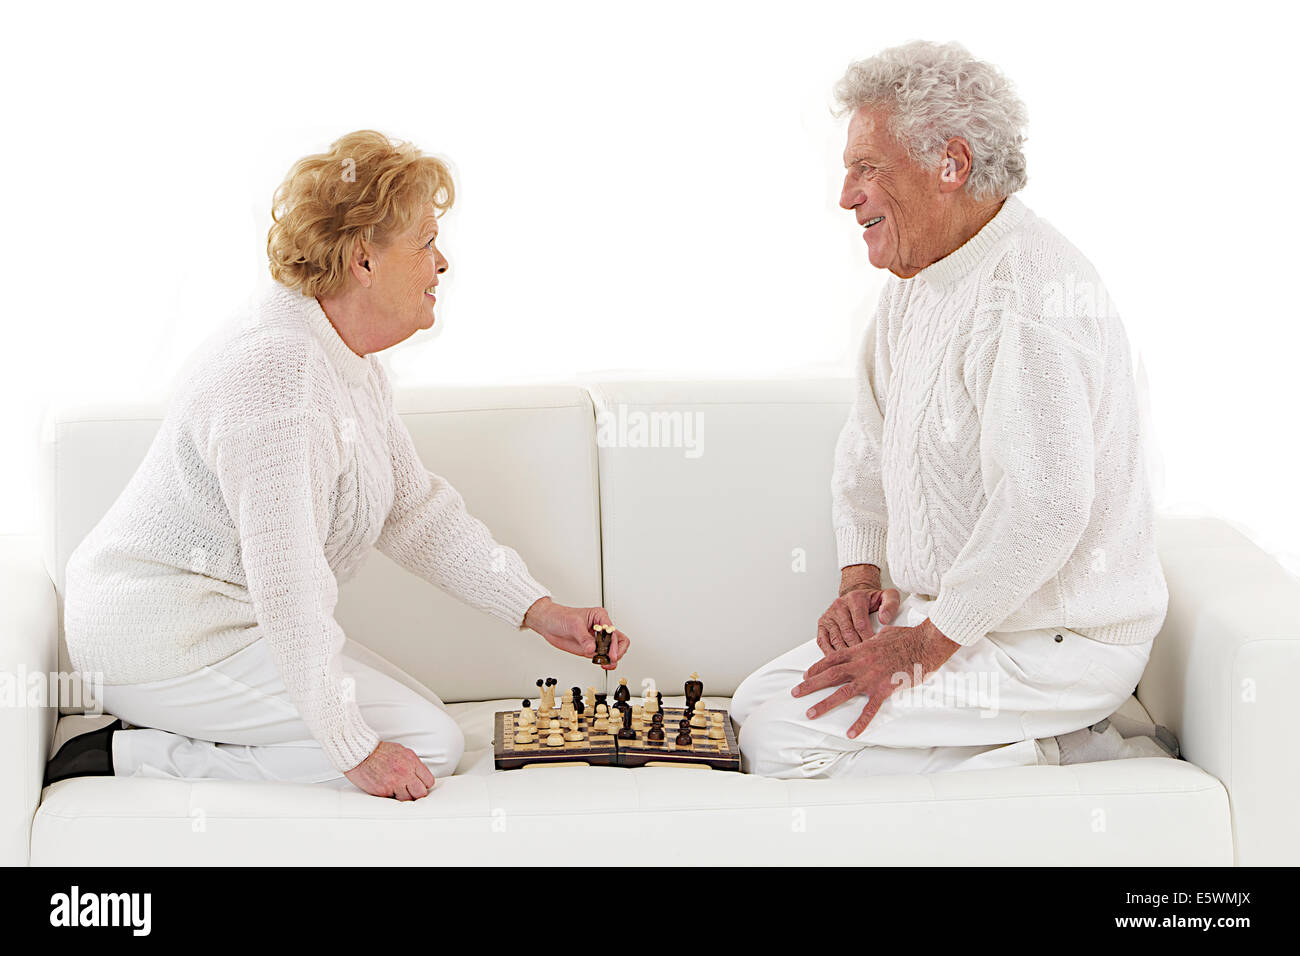 ELDERLY PEOPLE PLAYING CHESS - Stock Image